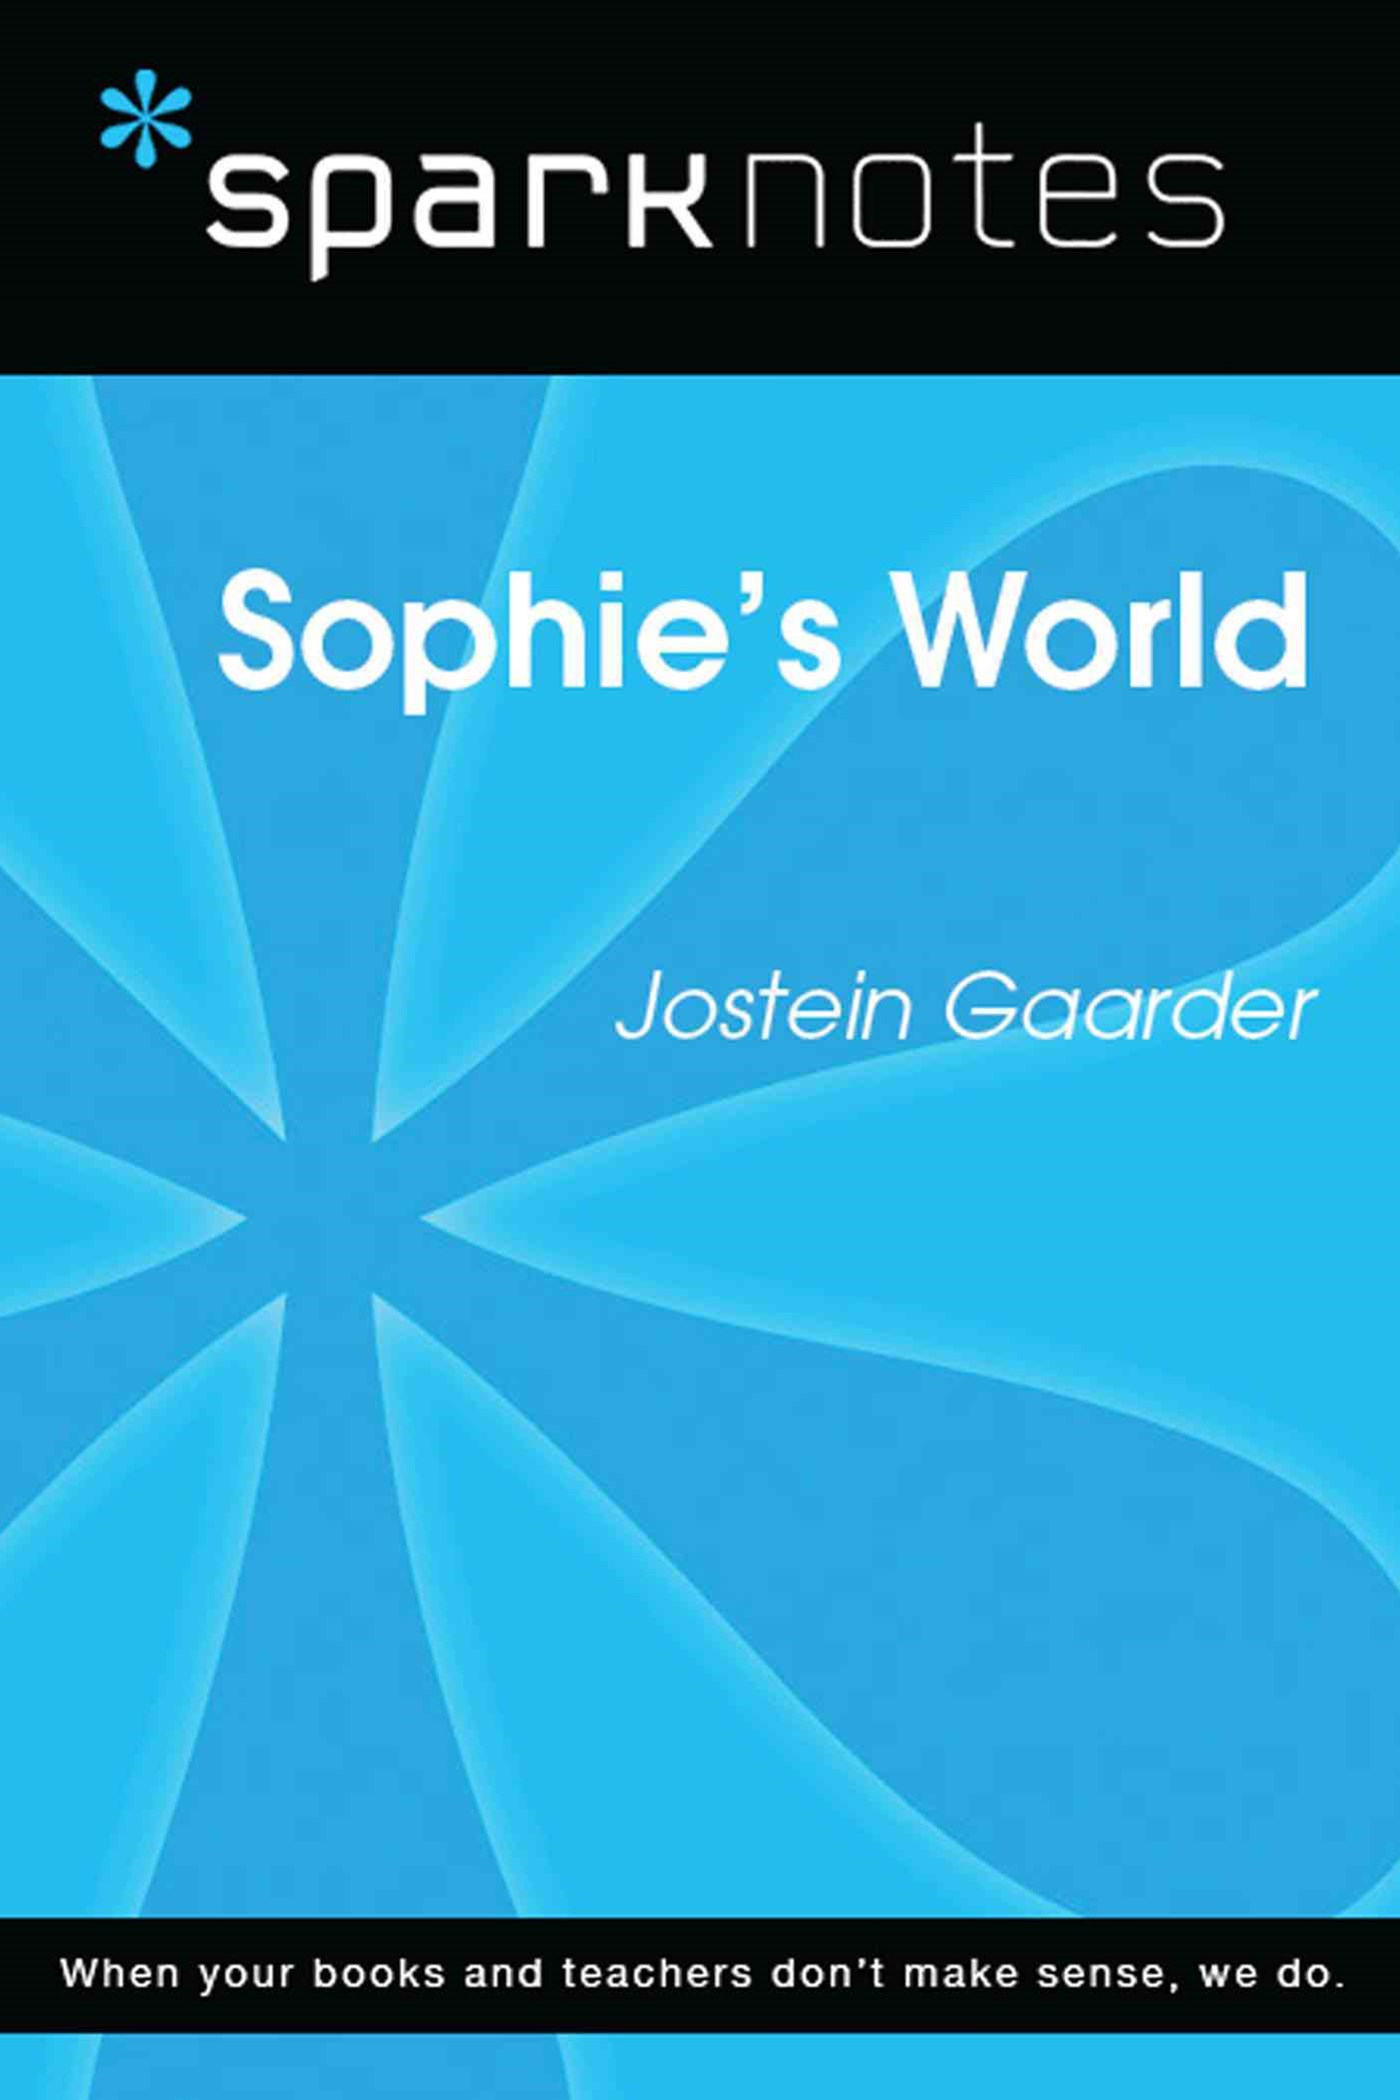 Sophie's World (SparkNotes Literature Guide)